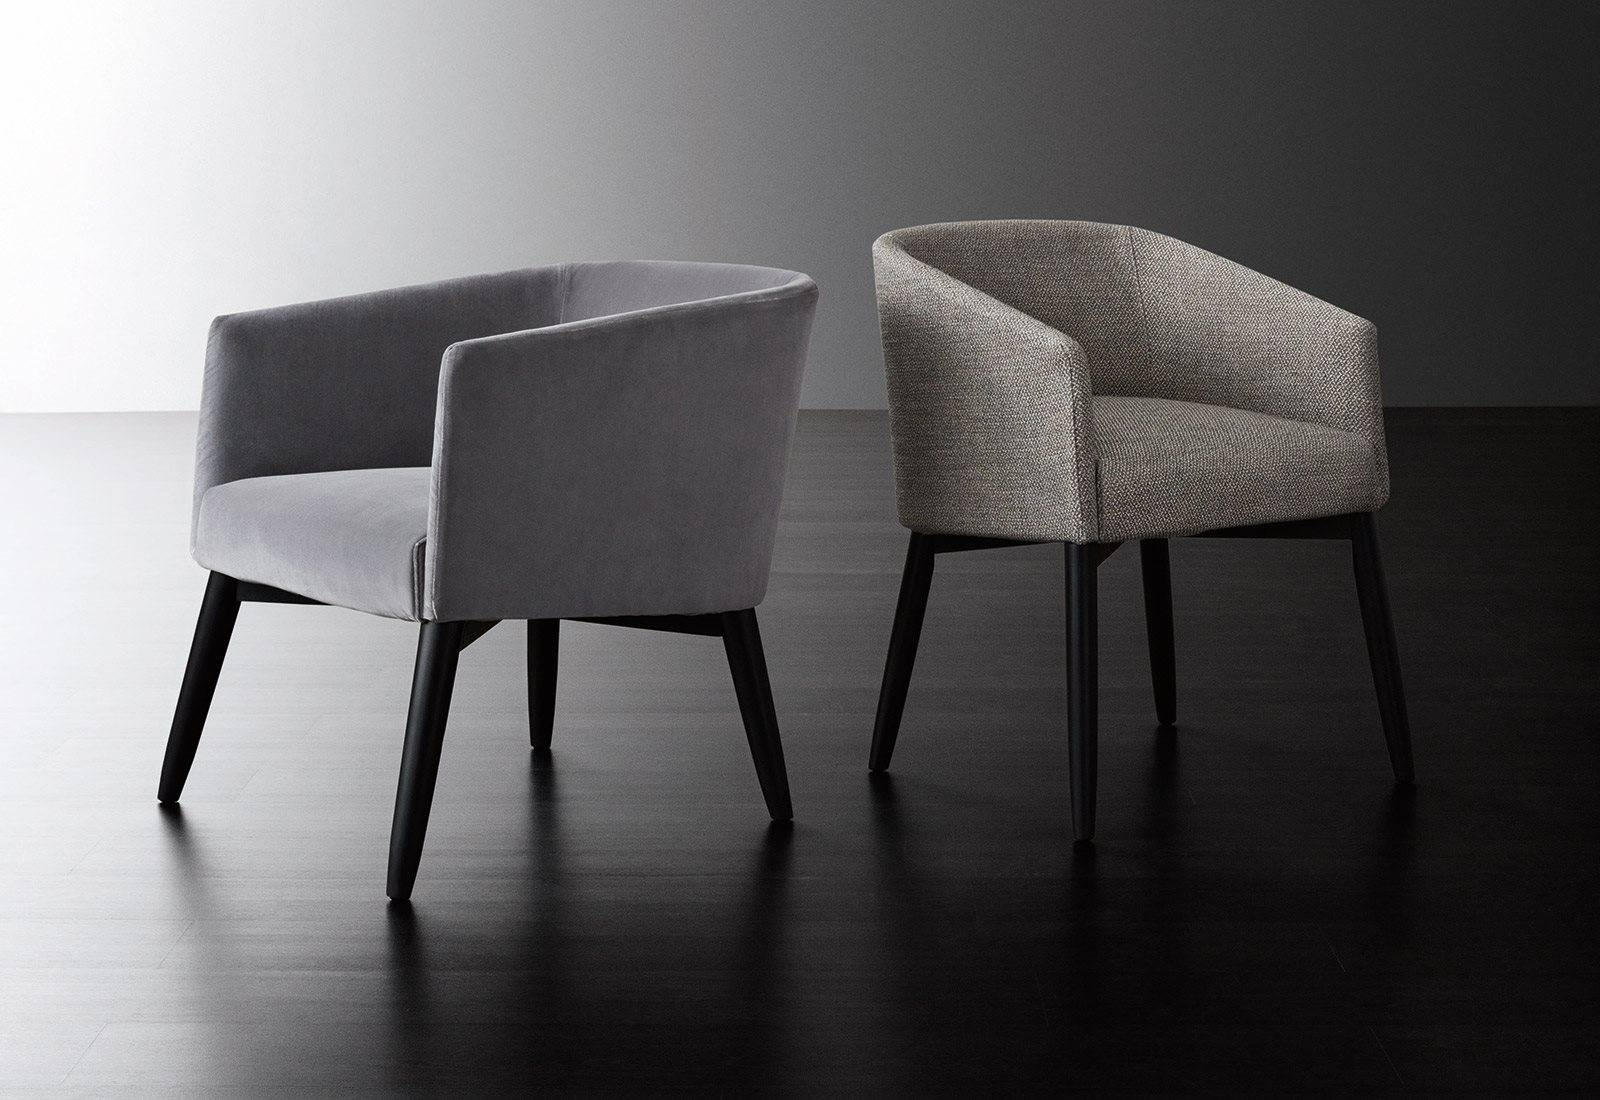 Small Armchairs | Meridiani intended for Small Arm Chairs (Image 23 of 30)